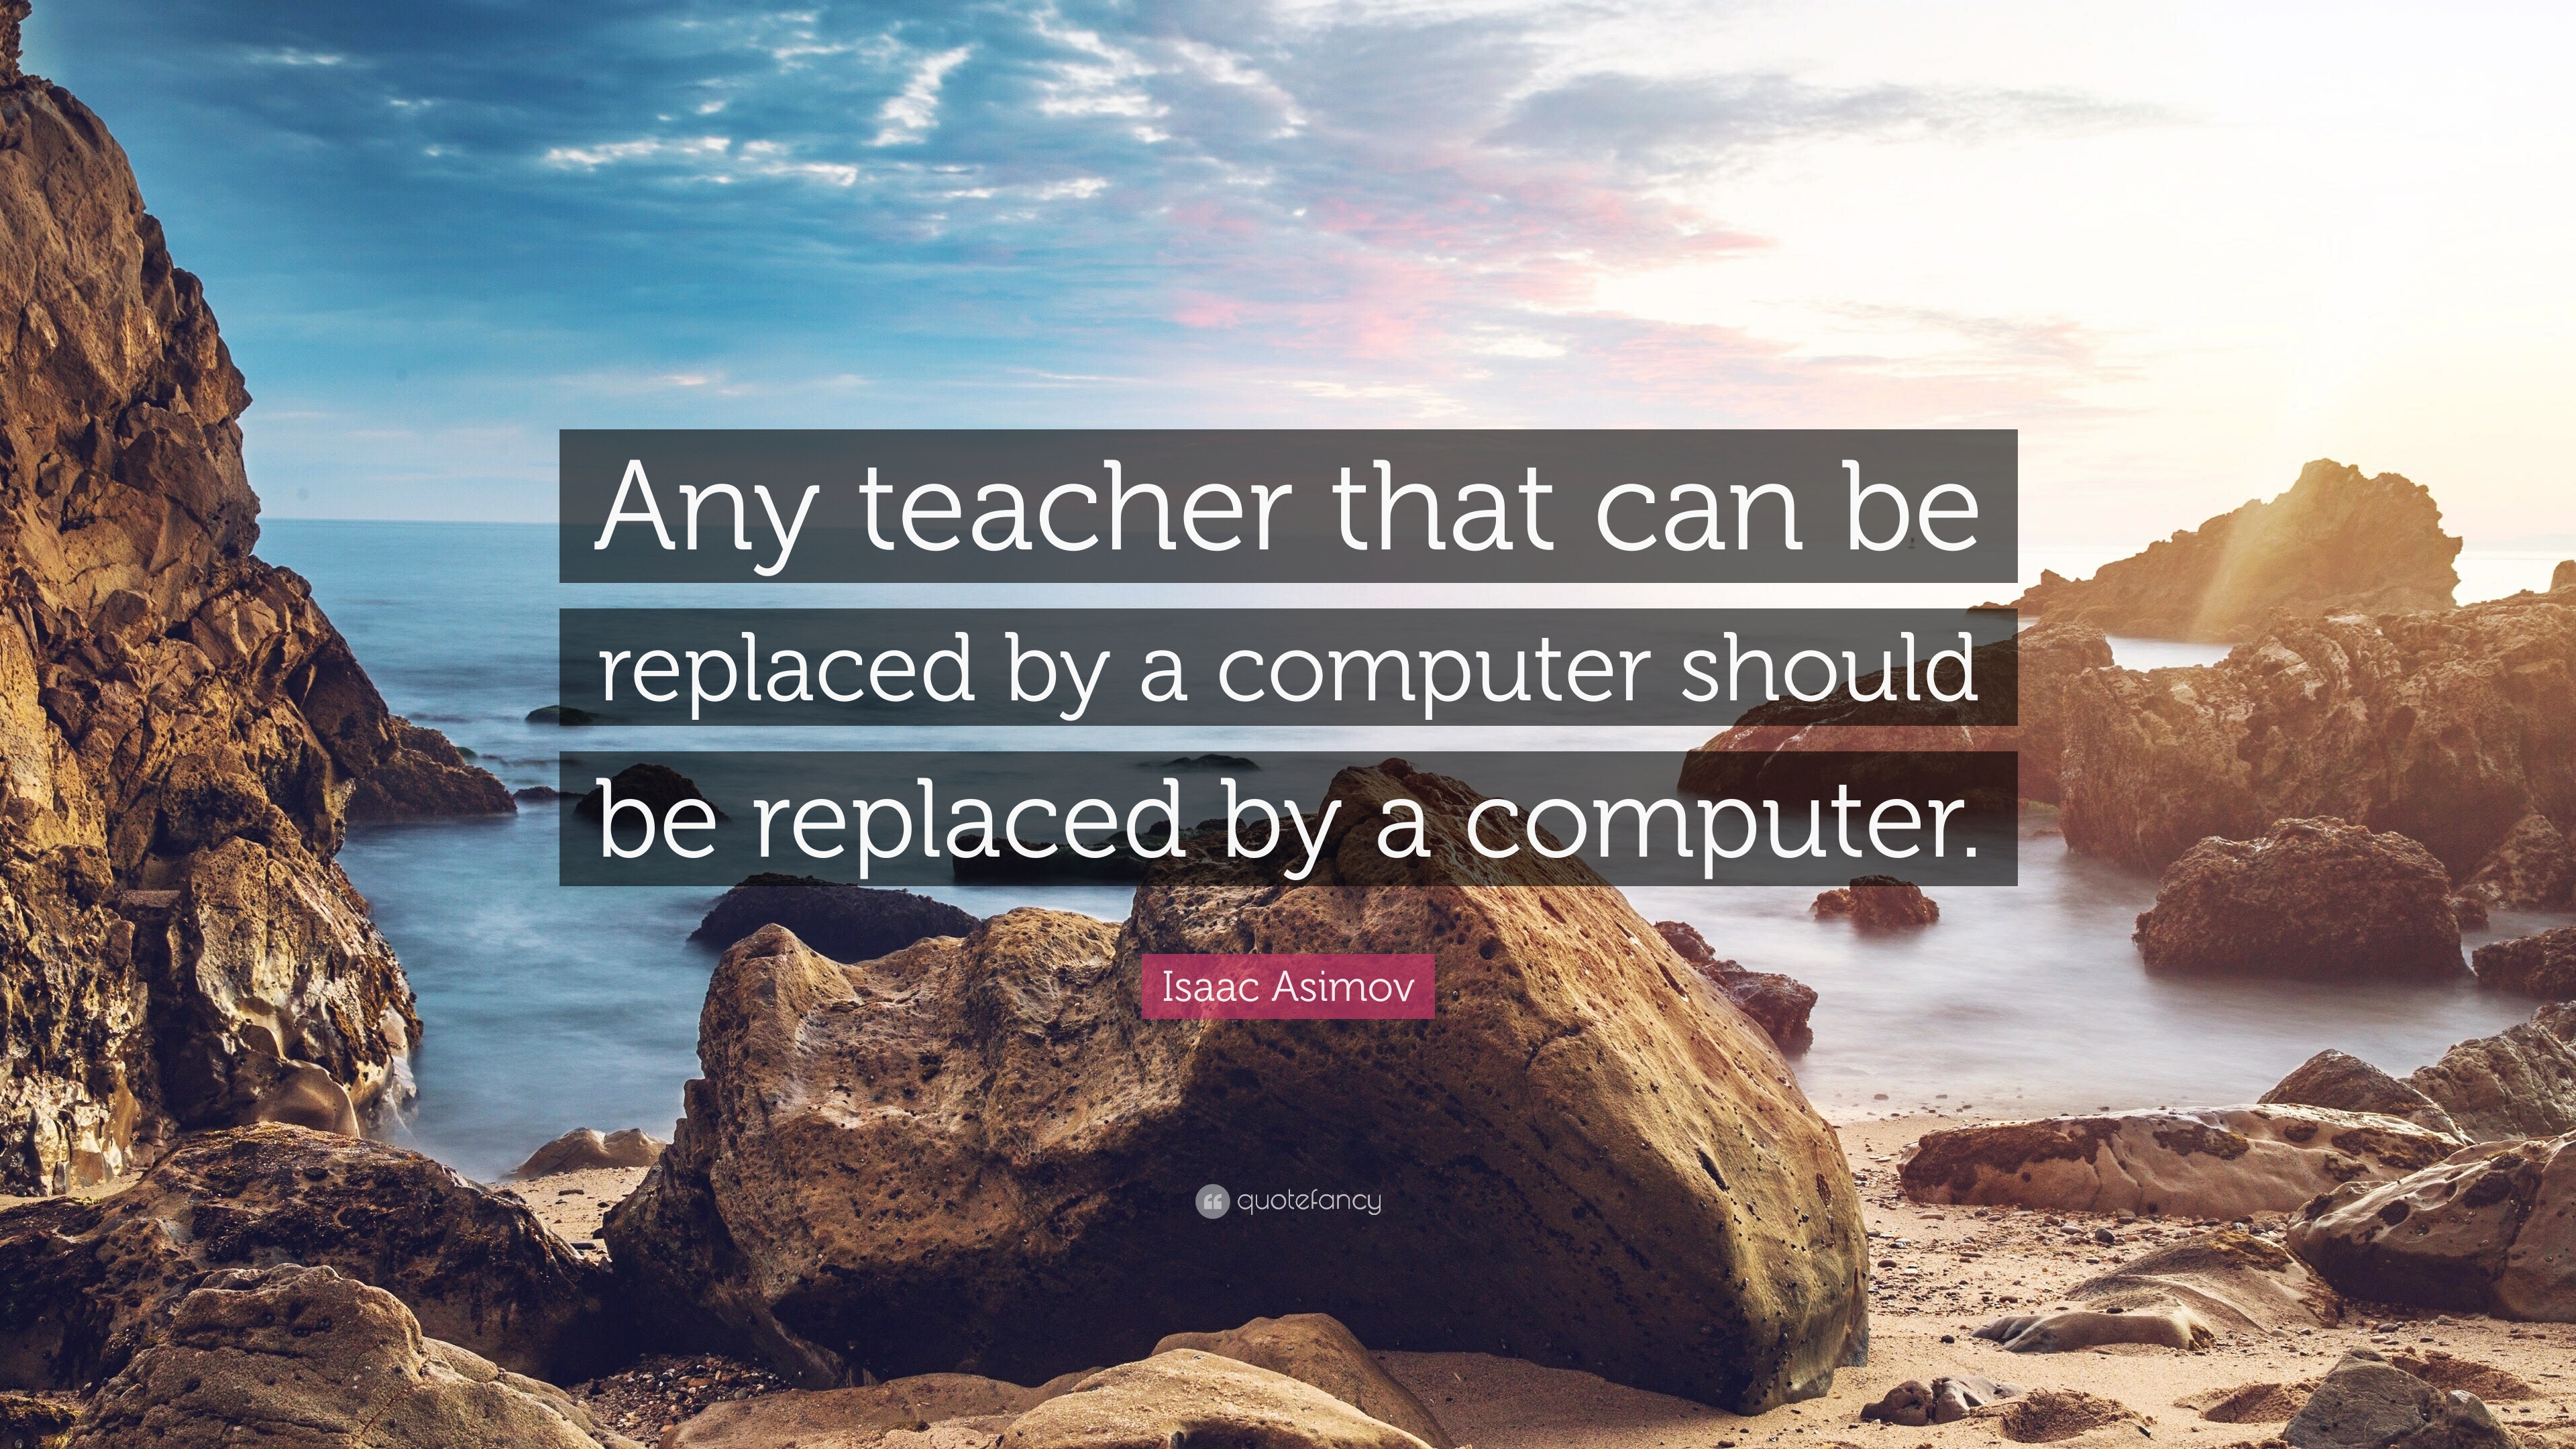 """teachers should be replaced by computers essay Could computers ever replace teachers there's no shortage of hype around the potential of technology in education, but could it render a human teacher obsolete  """"will computers replace a ."""